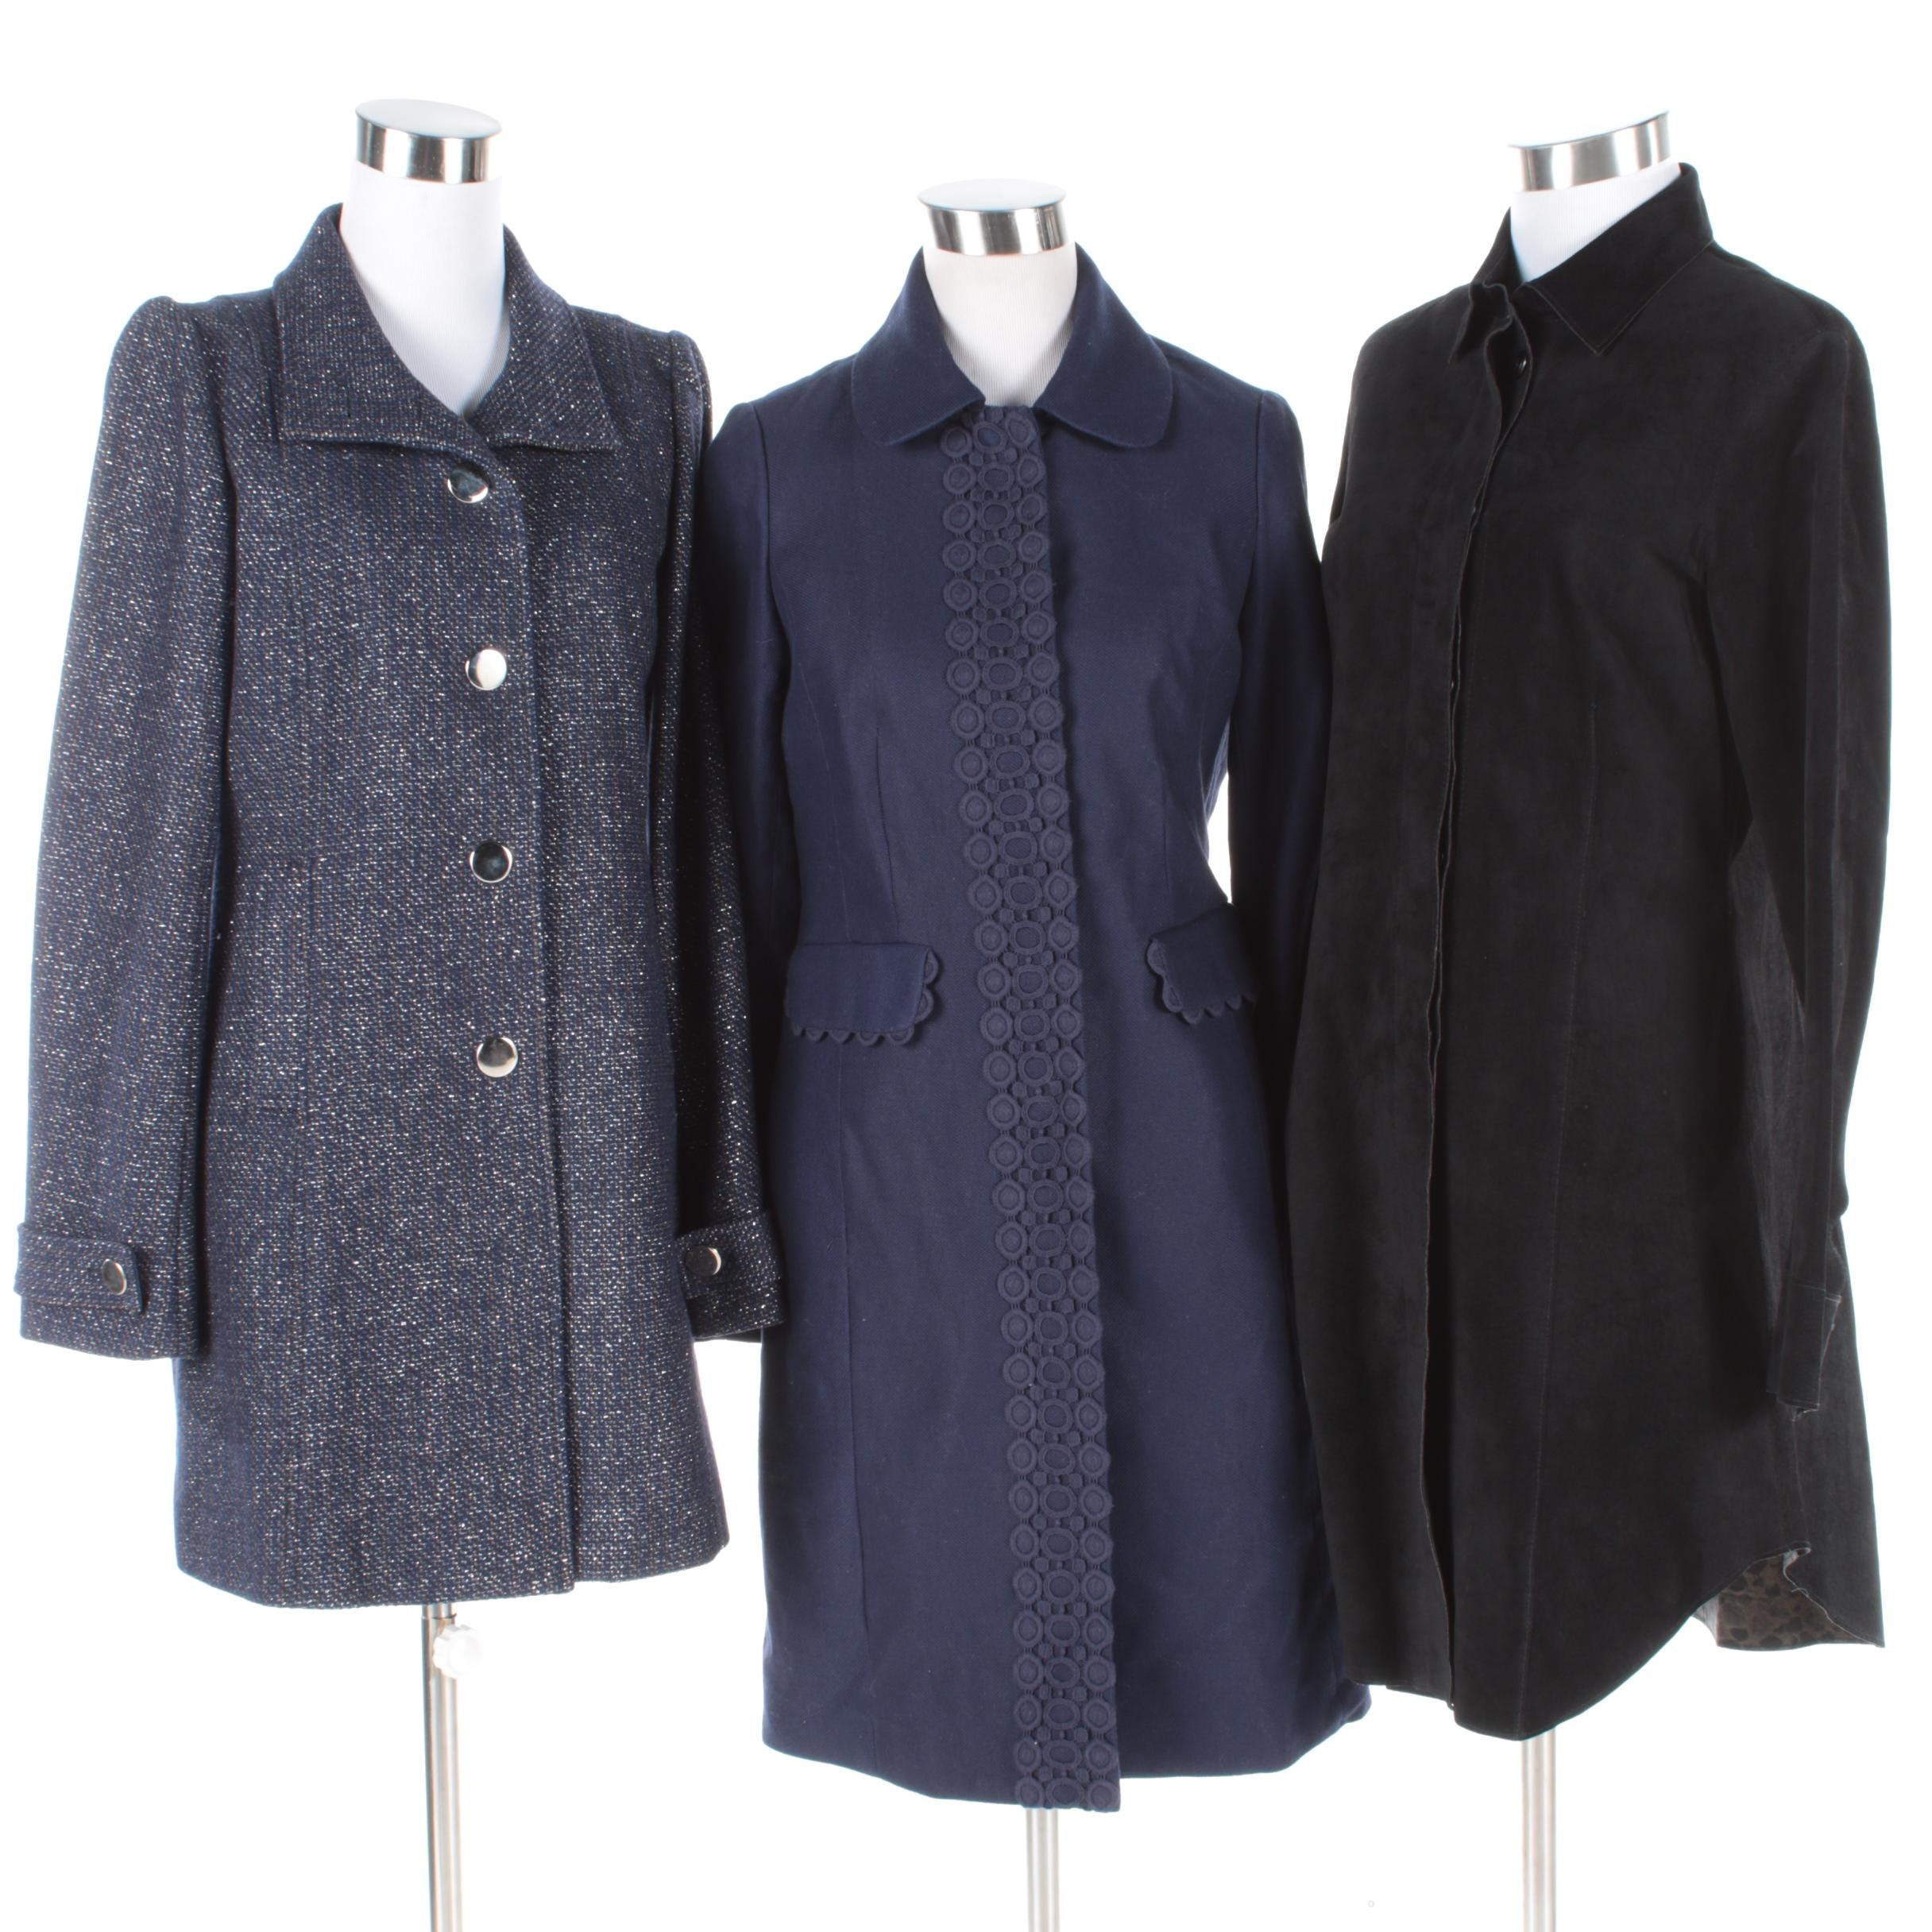 Women's Coats Including Tocca, Boden and Overland